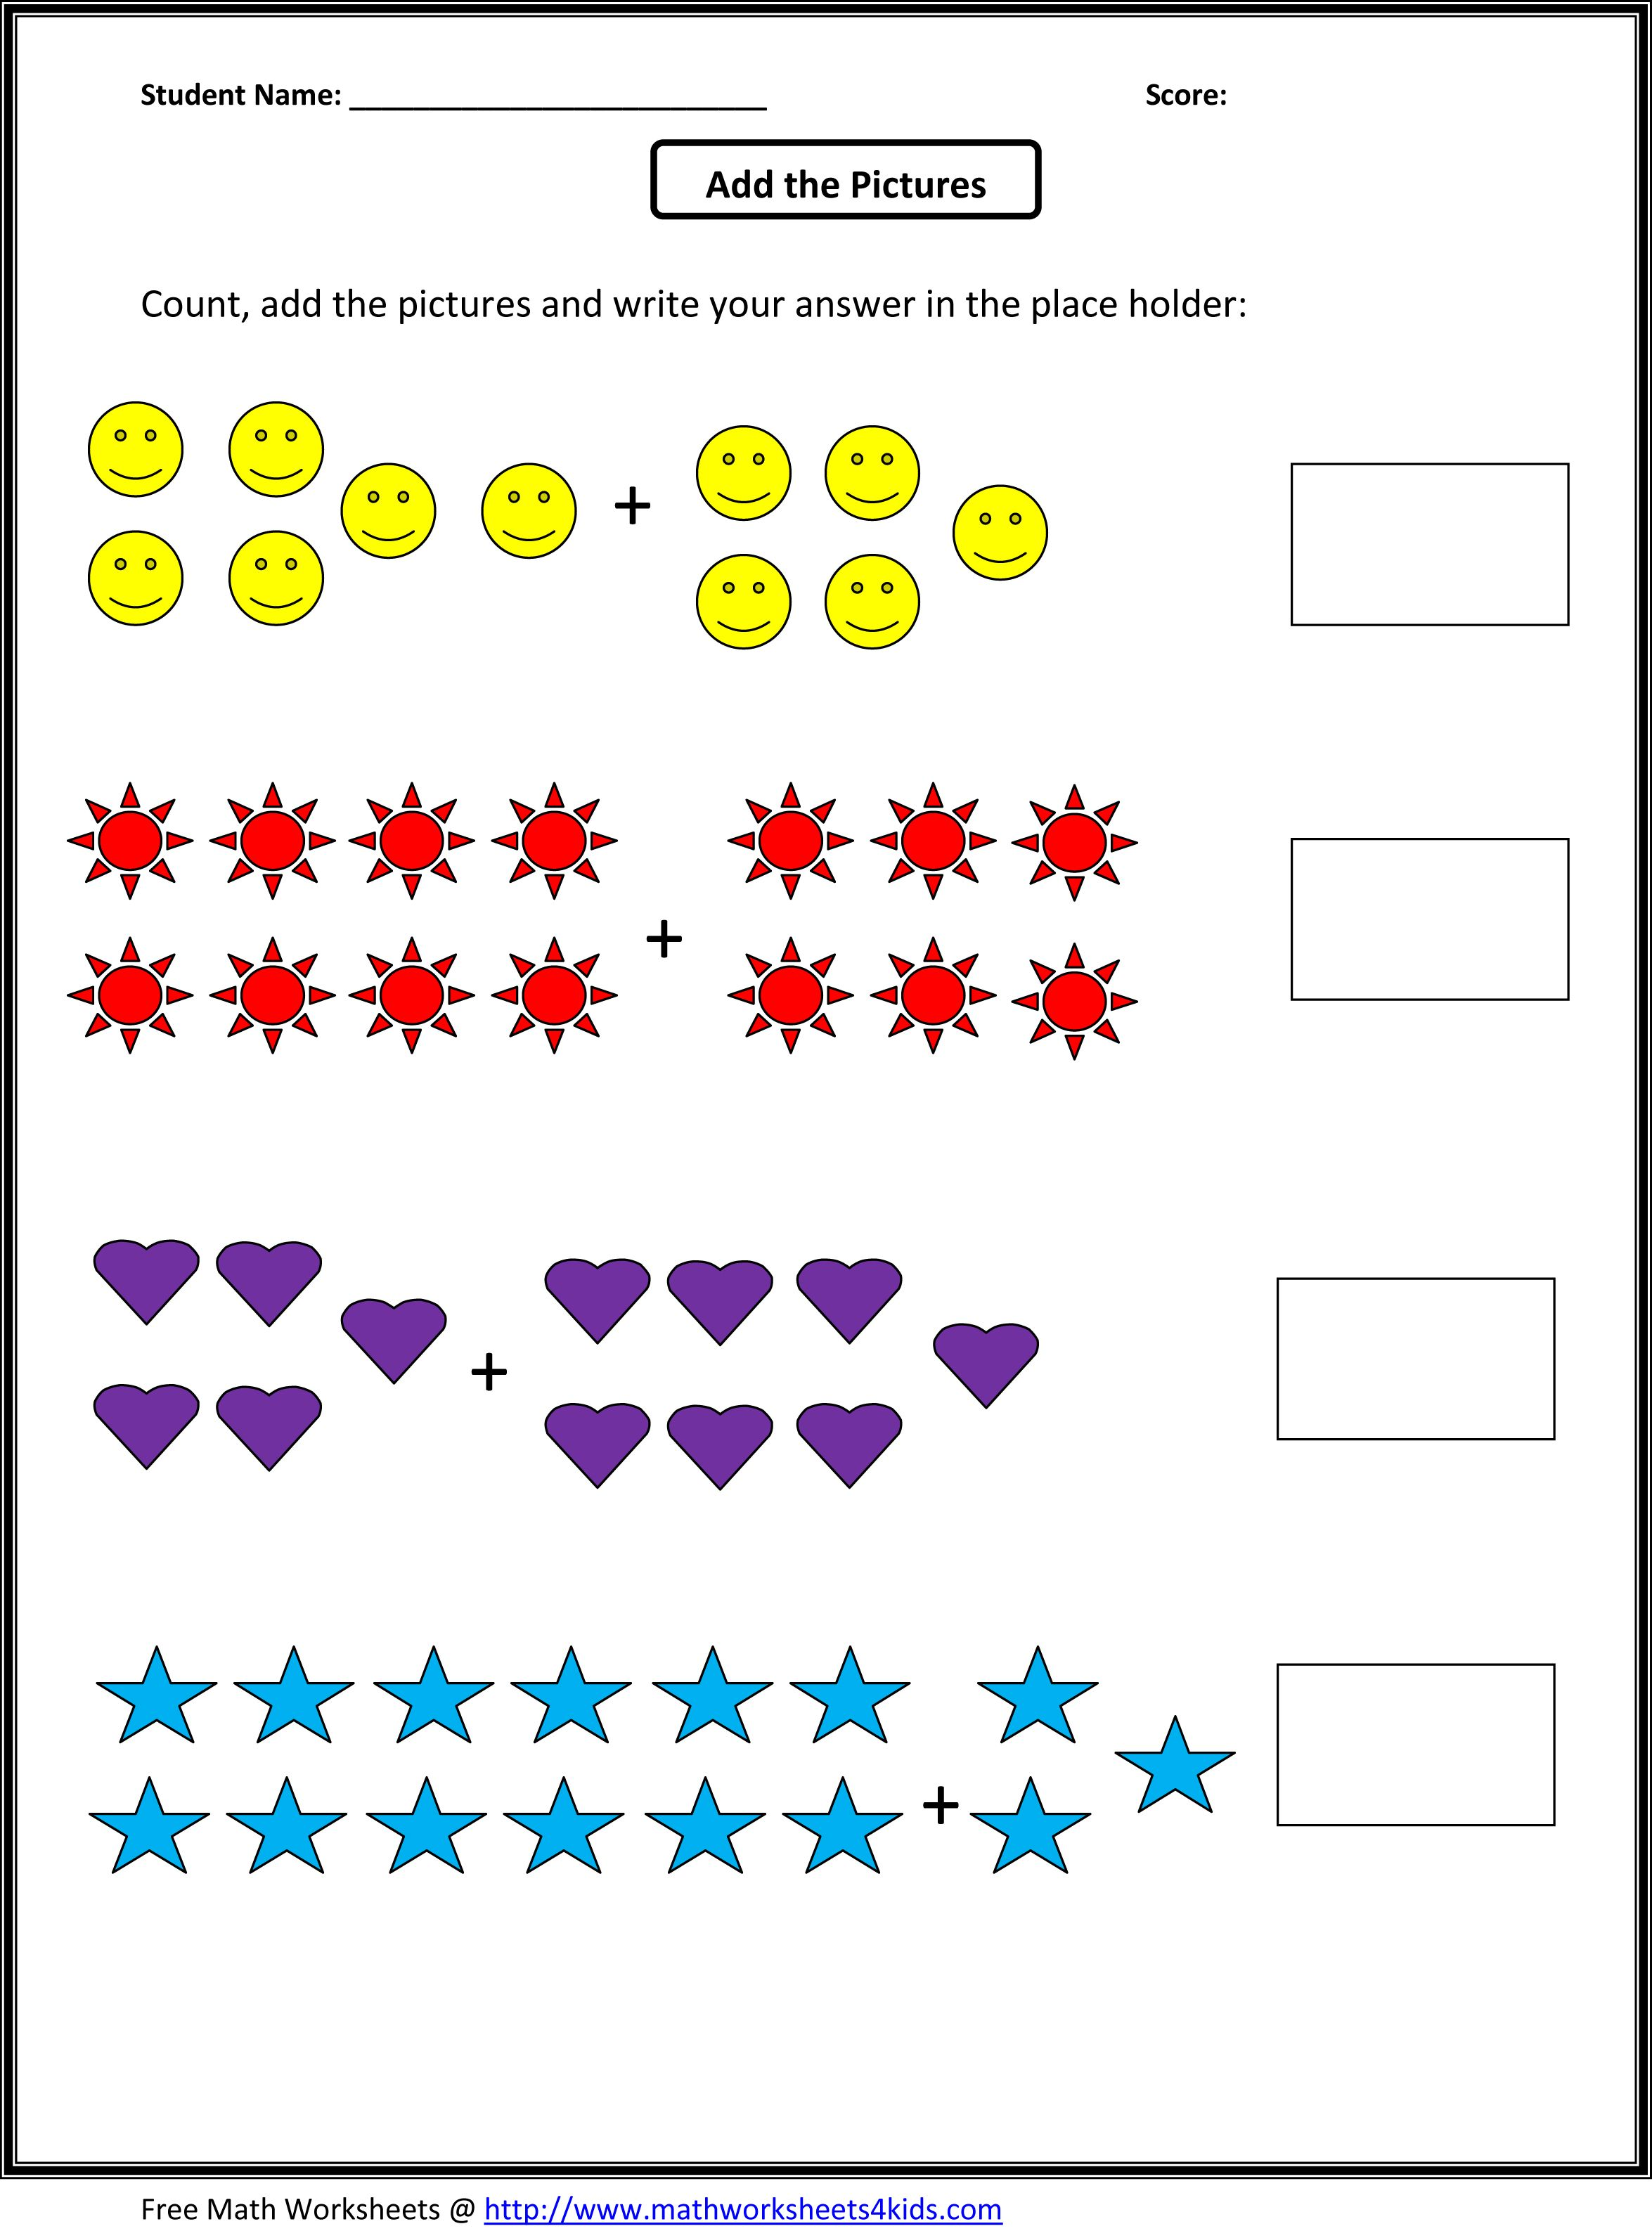 grade 1 addition math worksheets – Addition Worksheets for Grade 4